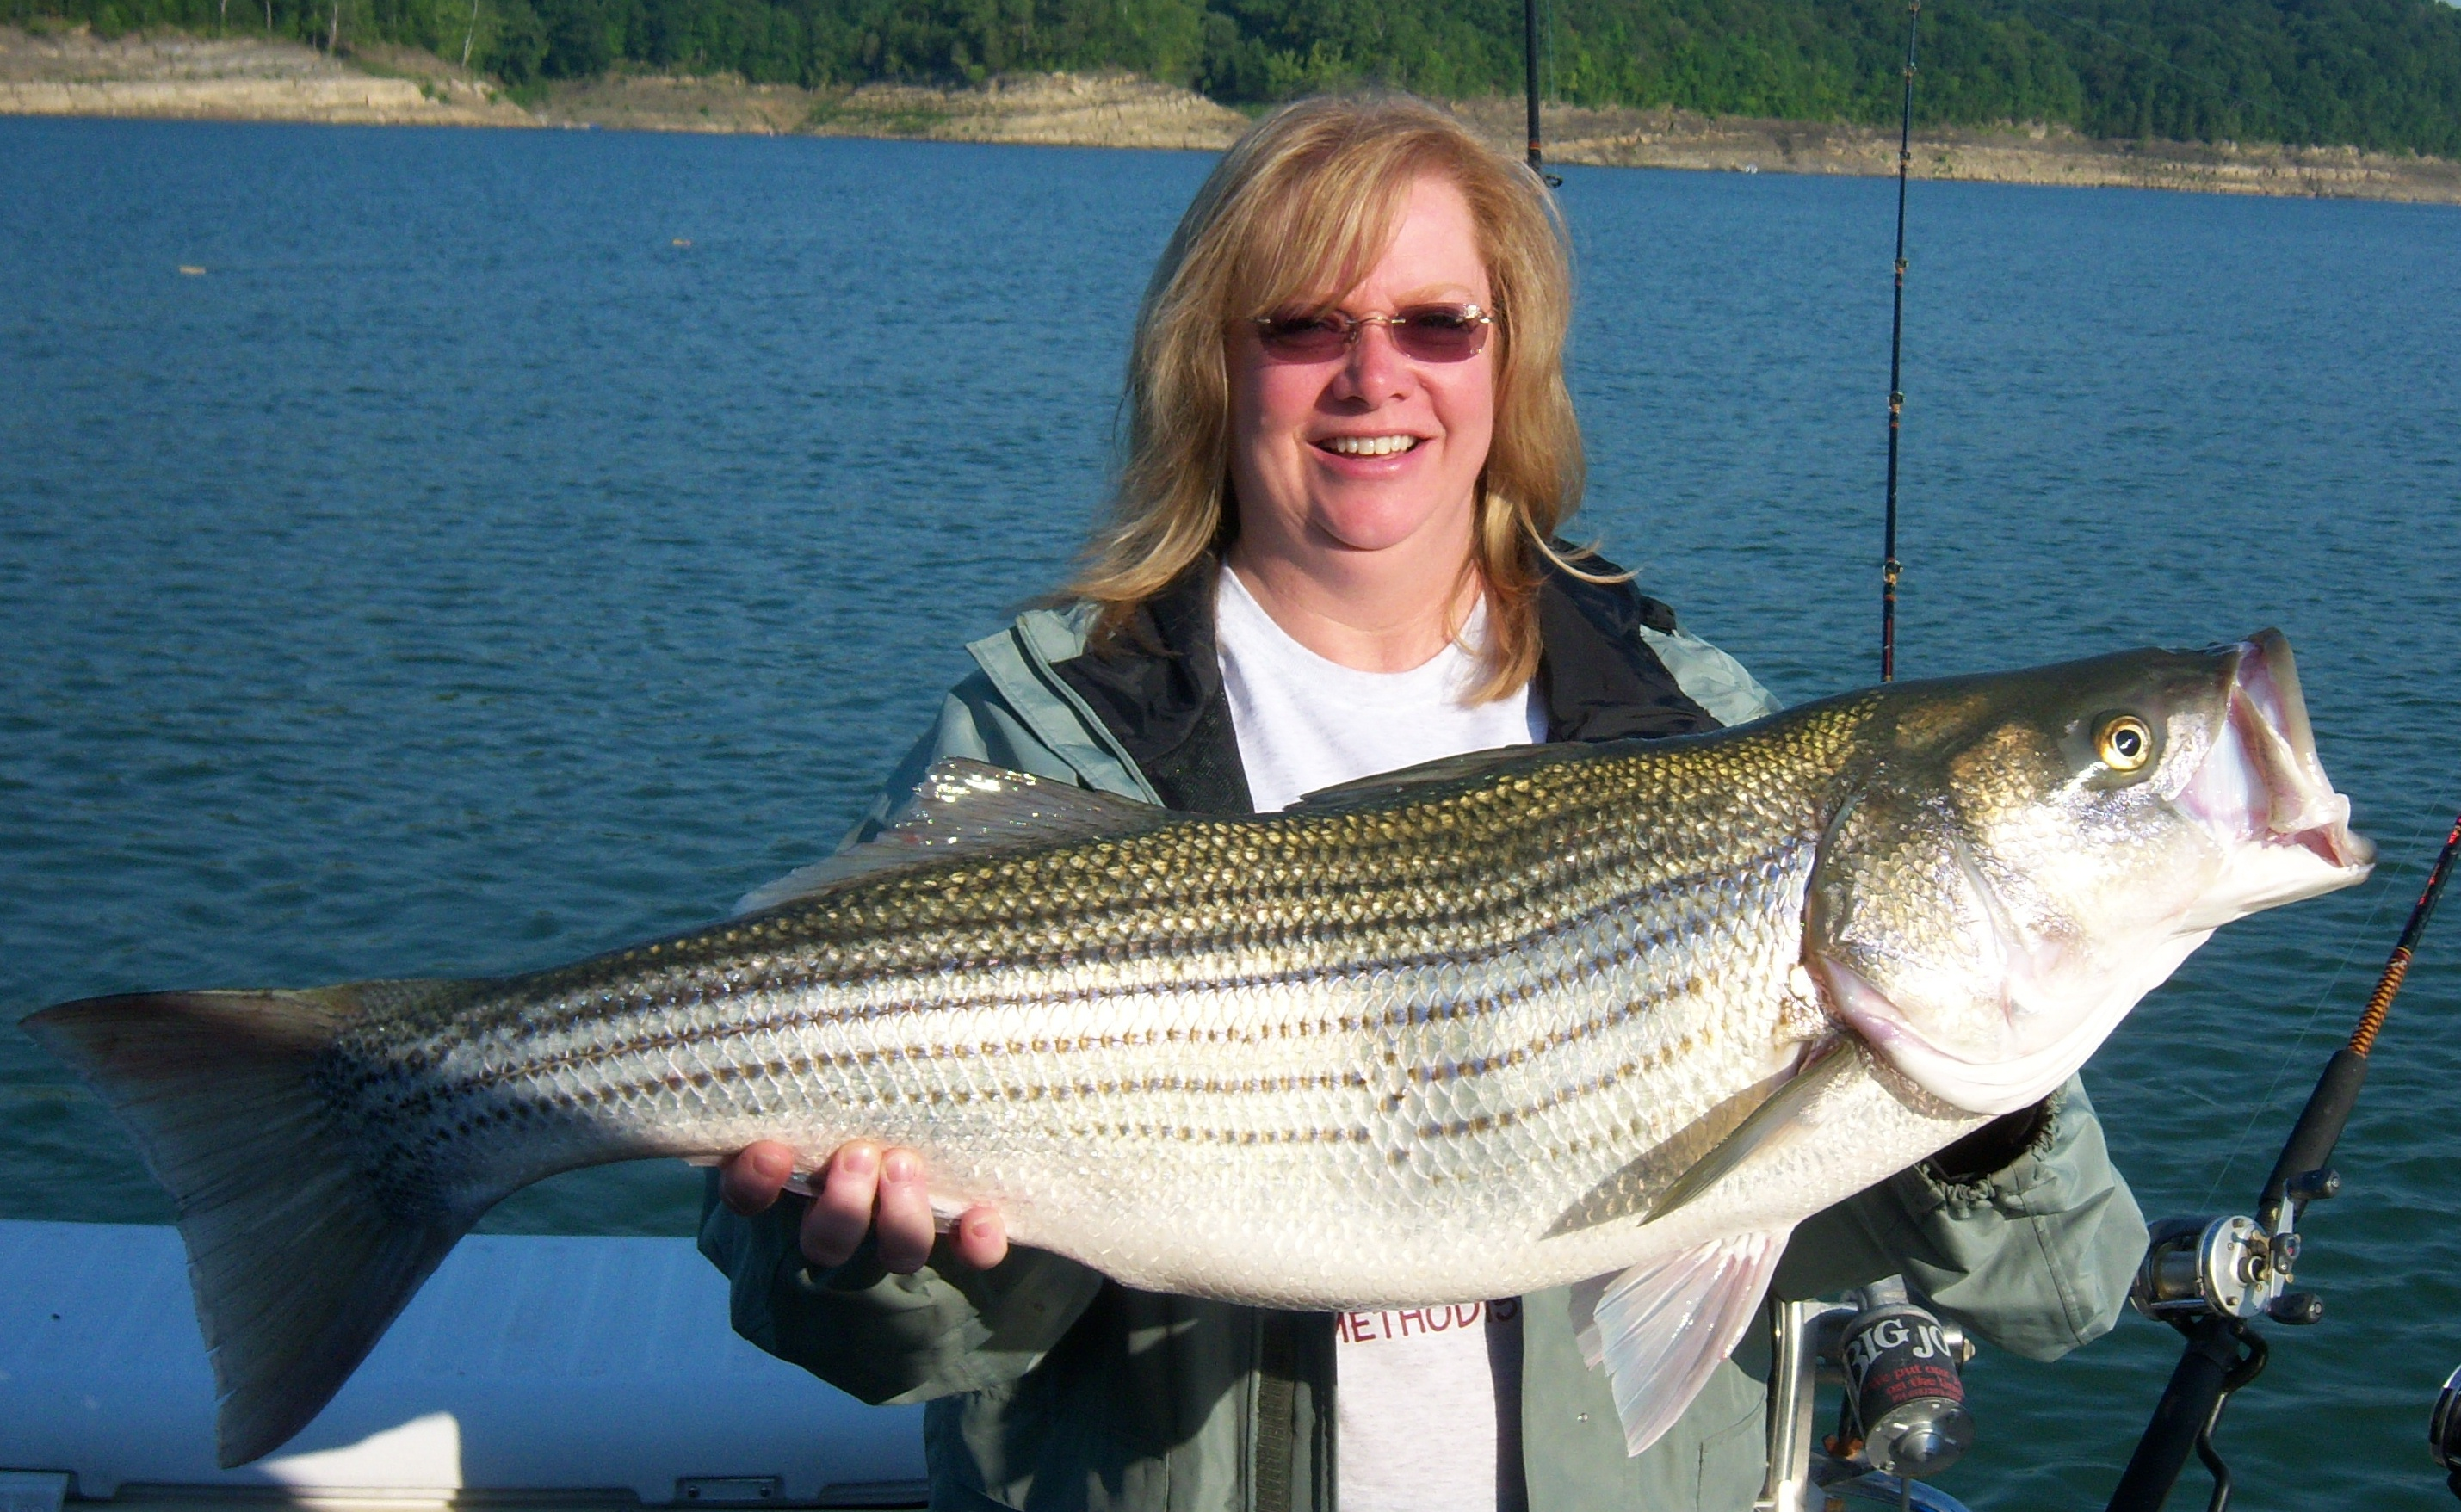 Morgan 39 s guide service inc trophy striper fishing on for Striper fishing lake cumberland